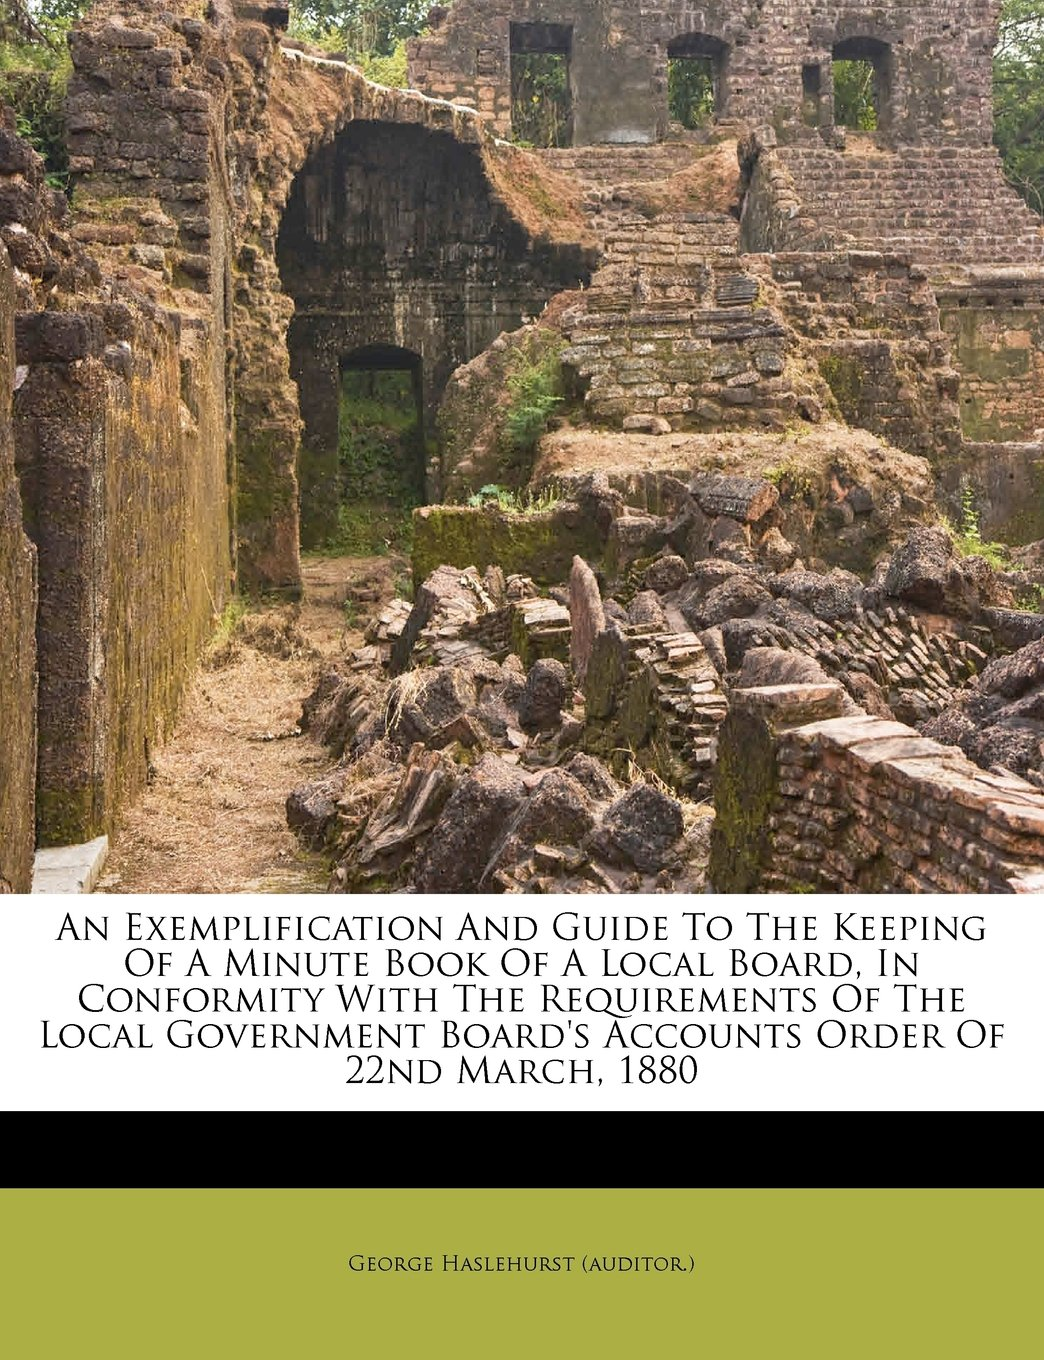 Download An Exemplification And Guide To The Keeping Of A Minute Book Of A Local Board, In Conformity With The Requirements Of The Local Government Board's Accounts Order Of 22nd March, 1880 pdf